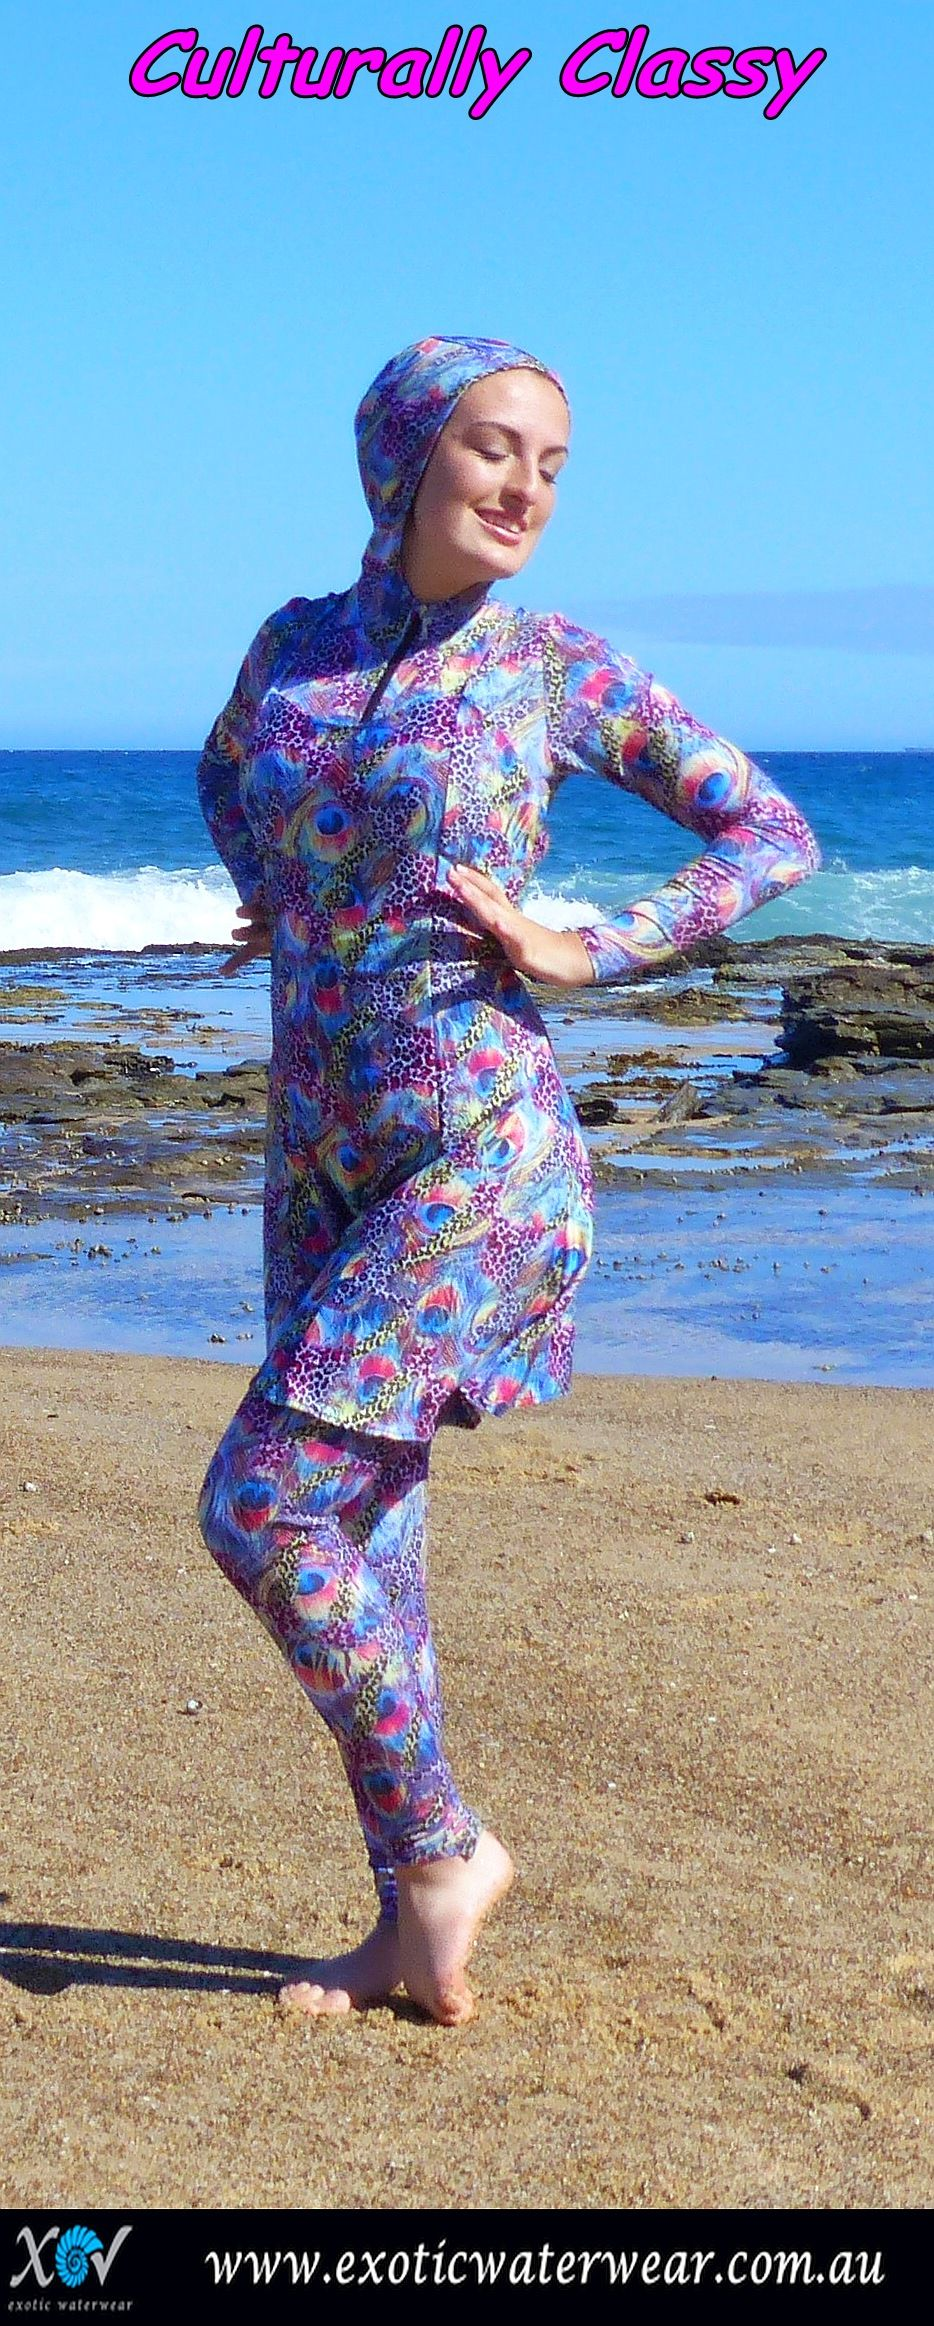 bf0c16d70abbf Beautiful bold burkinis with that extra pizzazz! Be different, be  fashionable, express yourself! Only online www.exoticwaterwear.com.au # burkini